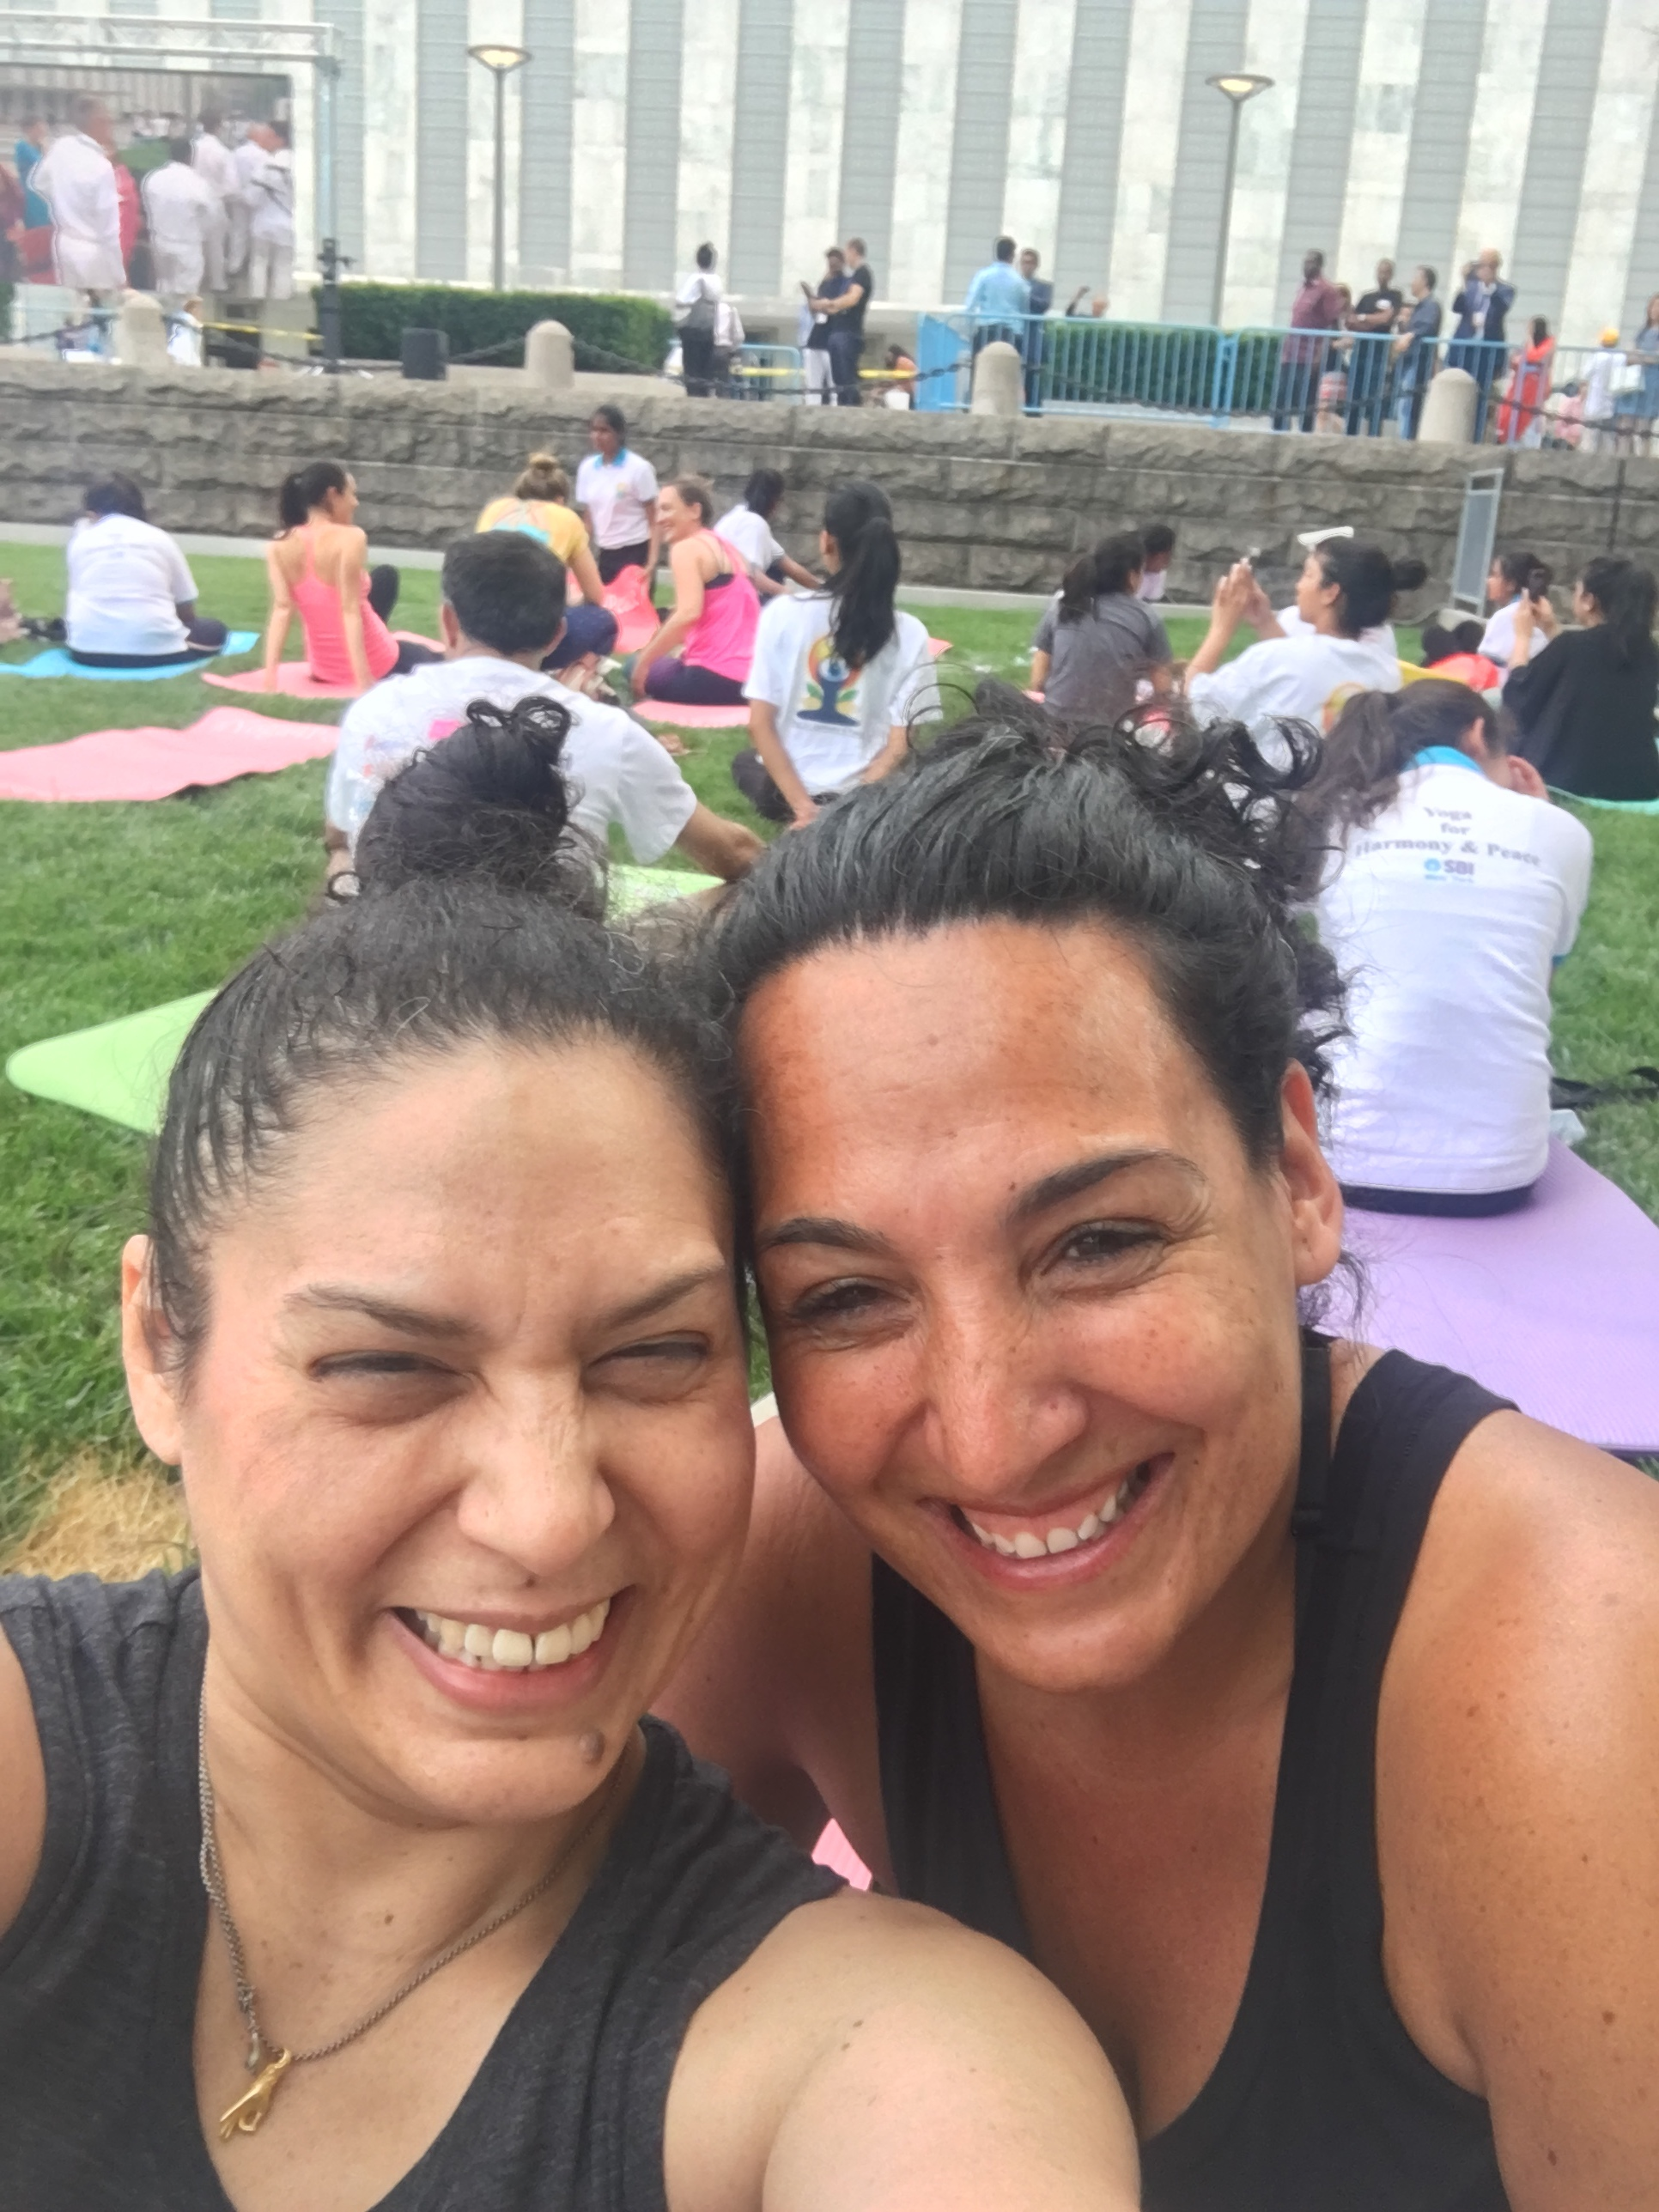 Me and my yogic partner in crime, Veronica